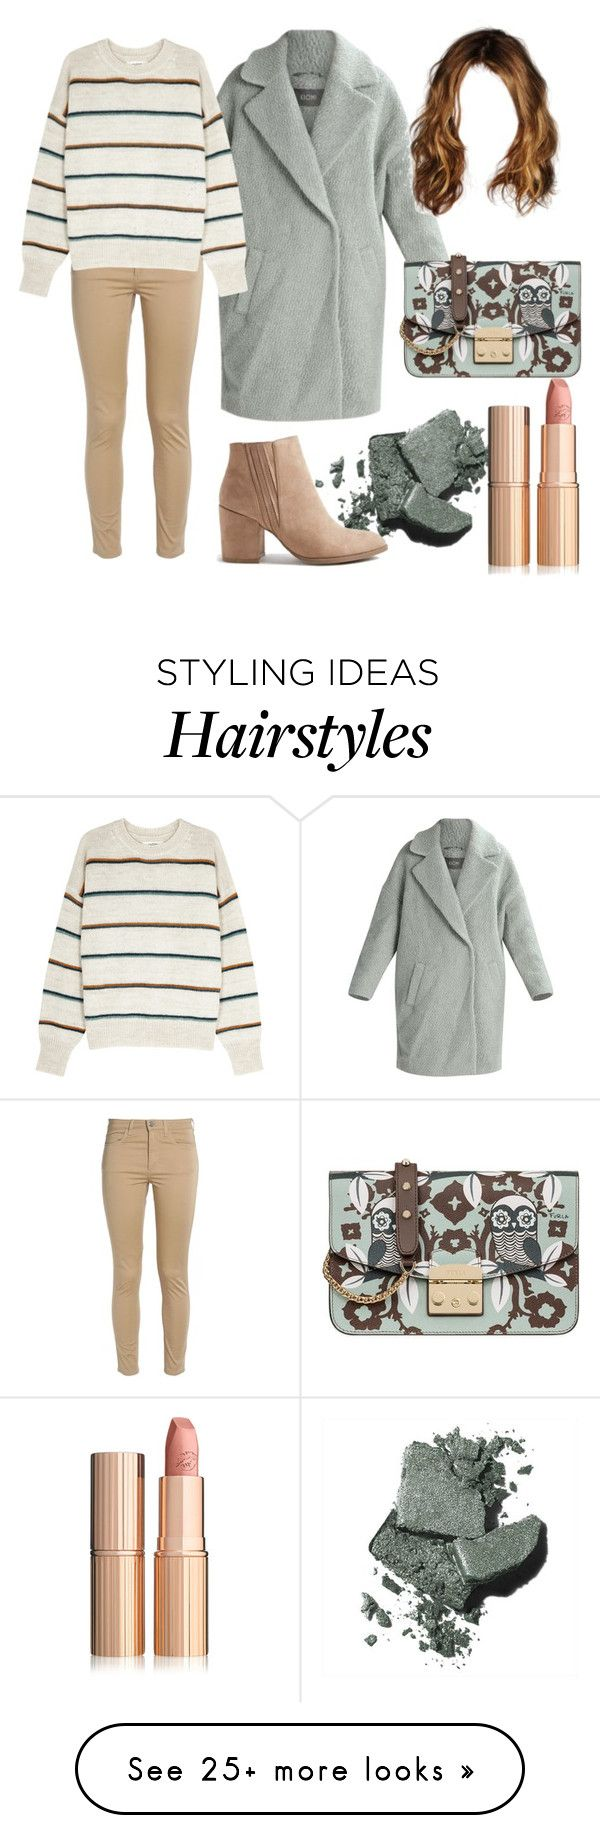 """Calm and cozy"" by aleks-stanisavljevic on Polyvore featuring Kiomi, Acne Studios, Bobbi Brown Cosmetics, Charlotte Tilbury, Étoile Isabel Marant and Furla"